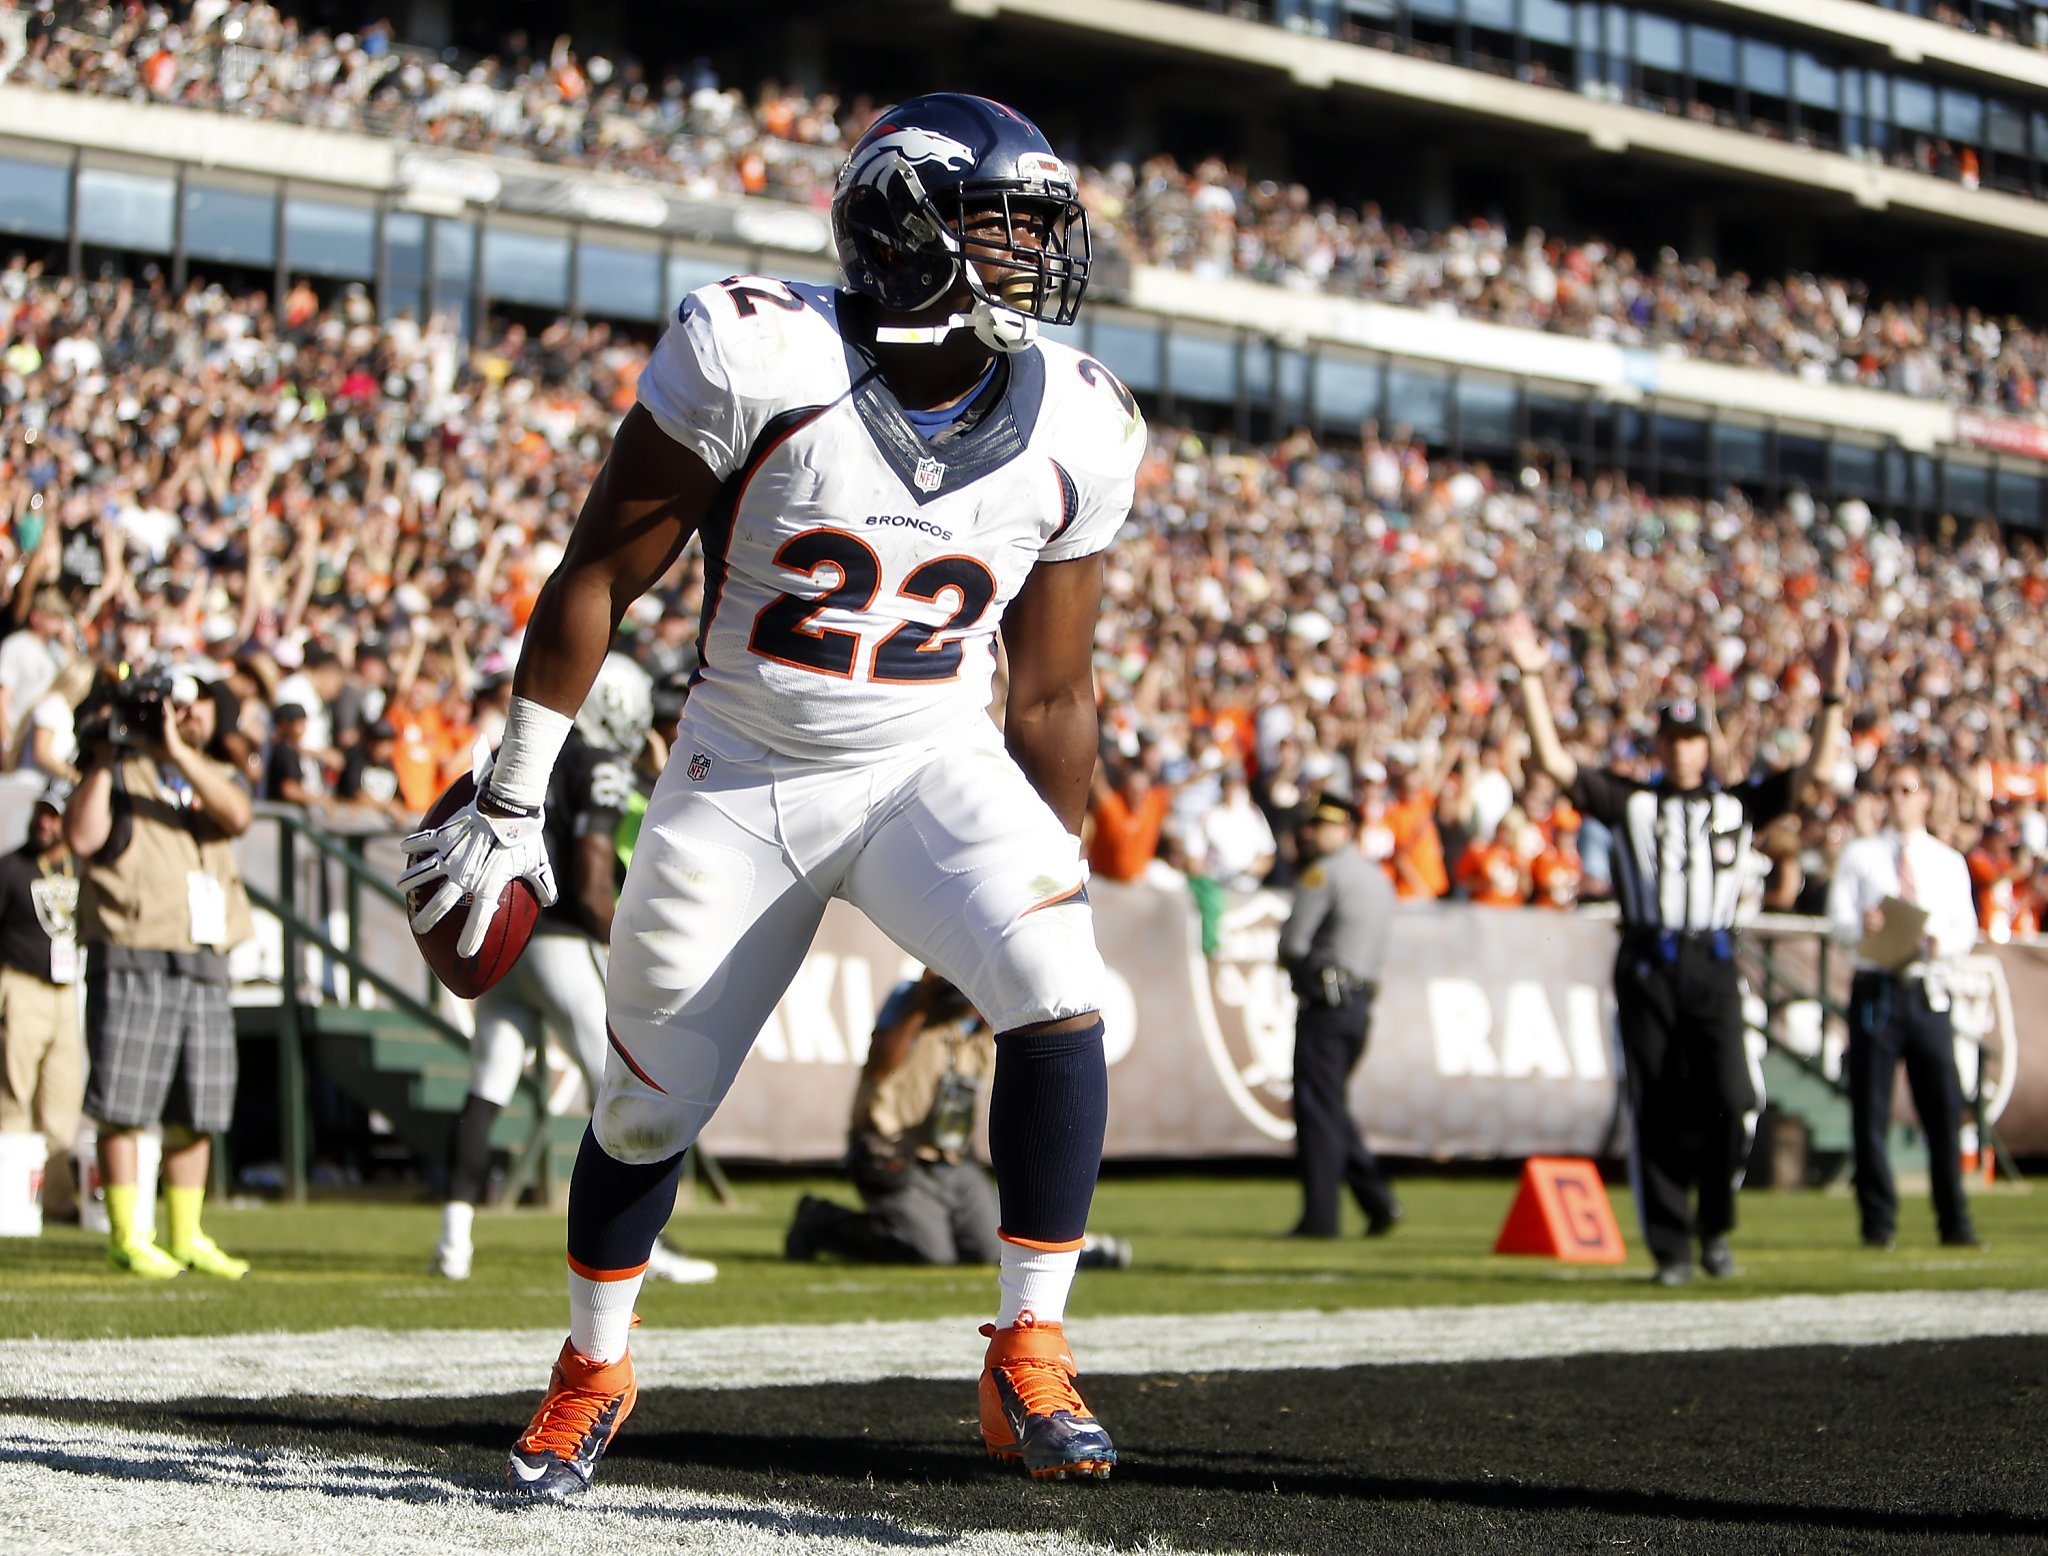 Broncos' C.J. Anderson credits Bay Area for NFL success